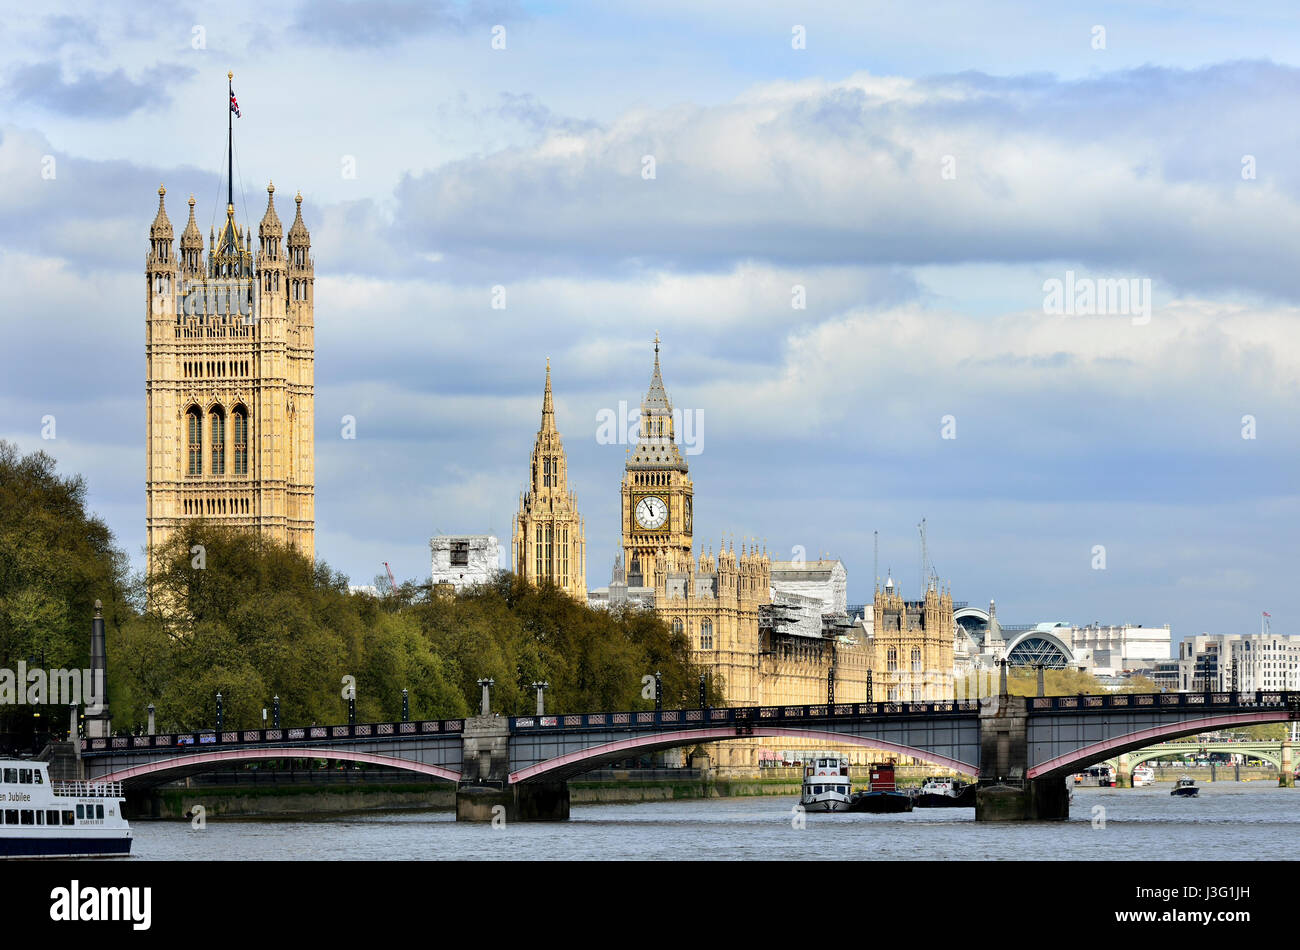 London, England, UK. Houses of Parliament and Lambeth Bridge seen from Vauxhall Bridge - Stock Image